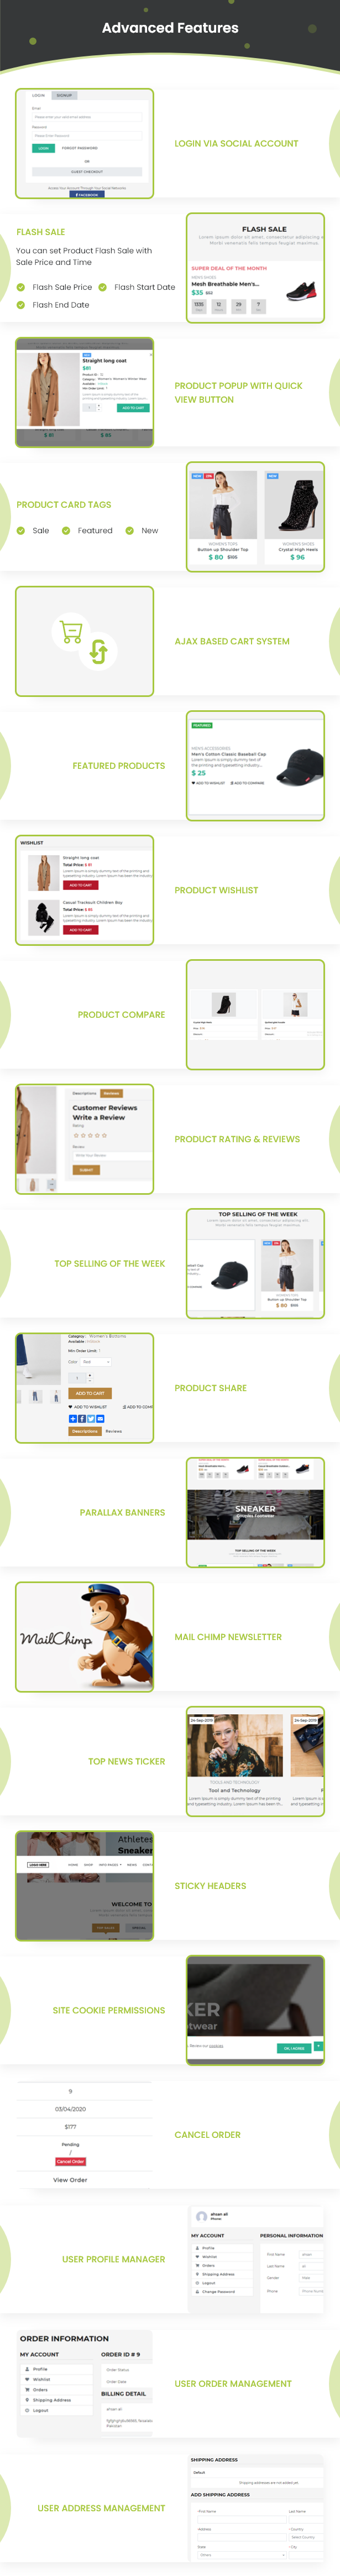 Ecommerce Solution with Delivery App For Grocery, Food, Pharmacy, Any Store / Laravel + Android Apps - 32